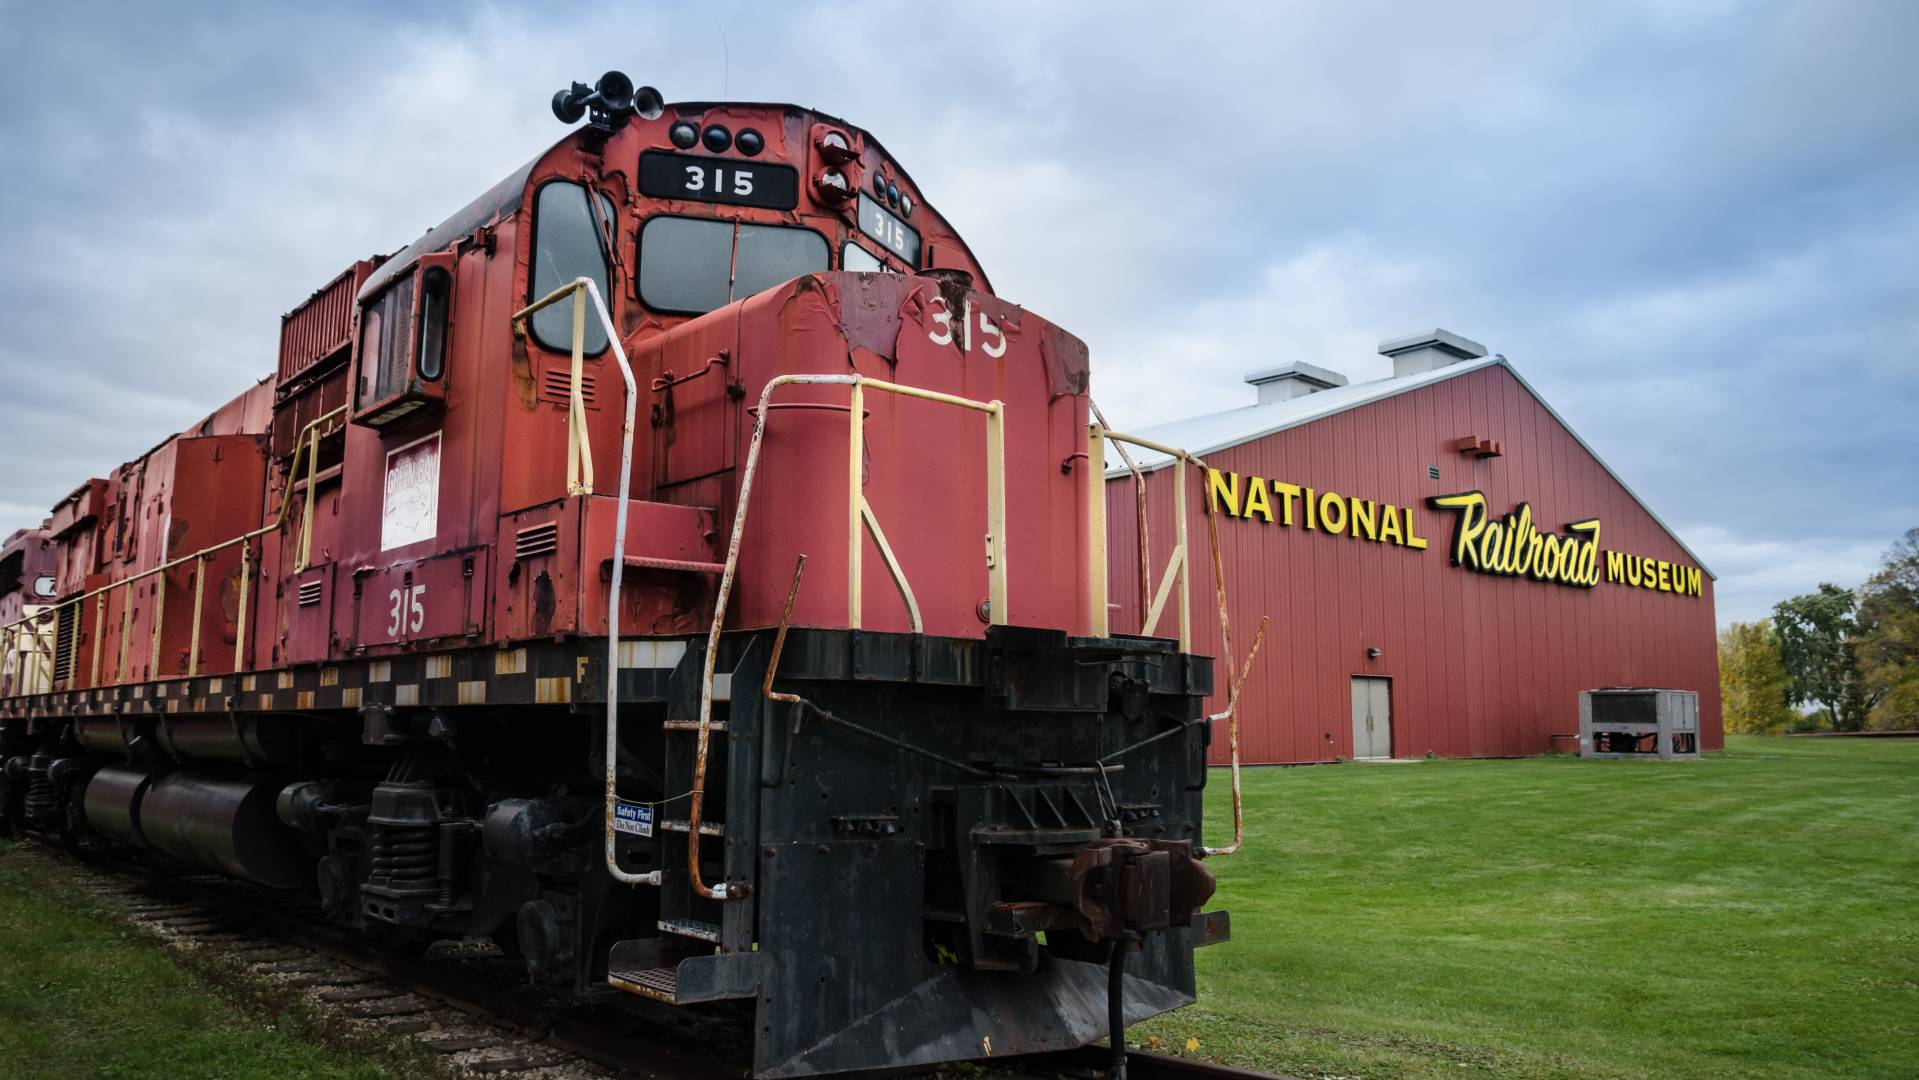 From the first European settlers and Native American culture to the National Railroad Museum, Green Bay has a museum that interests everyone.